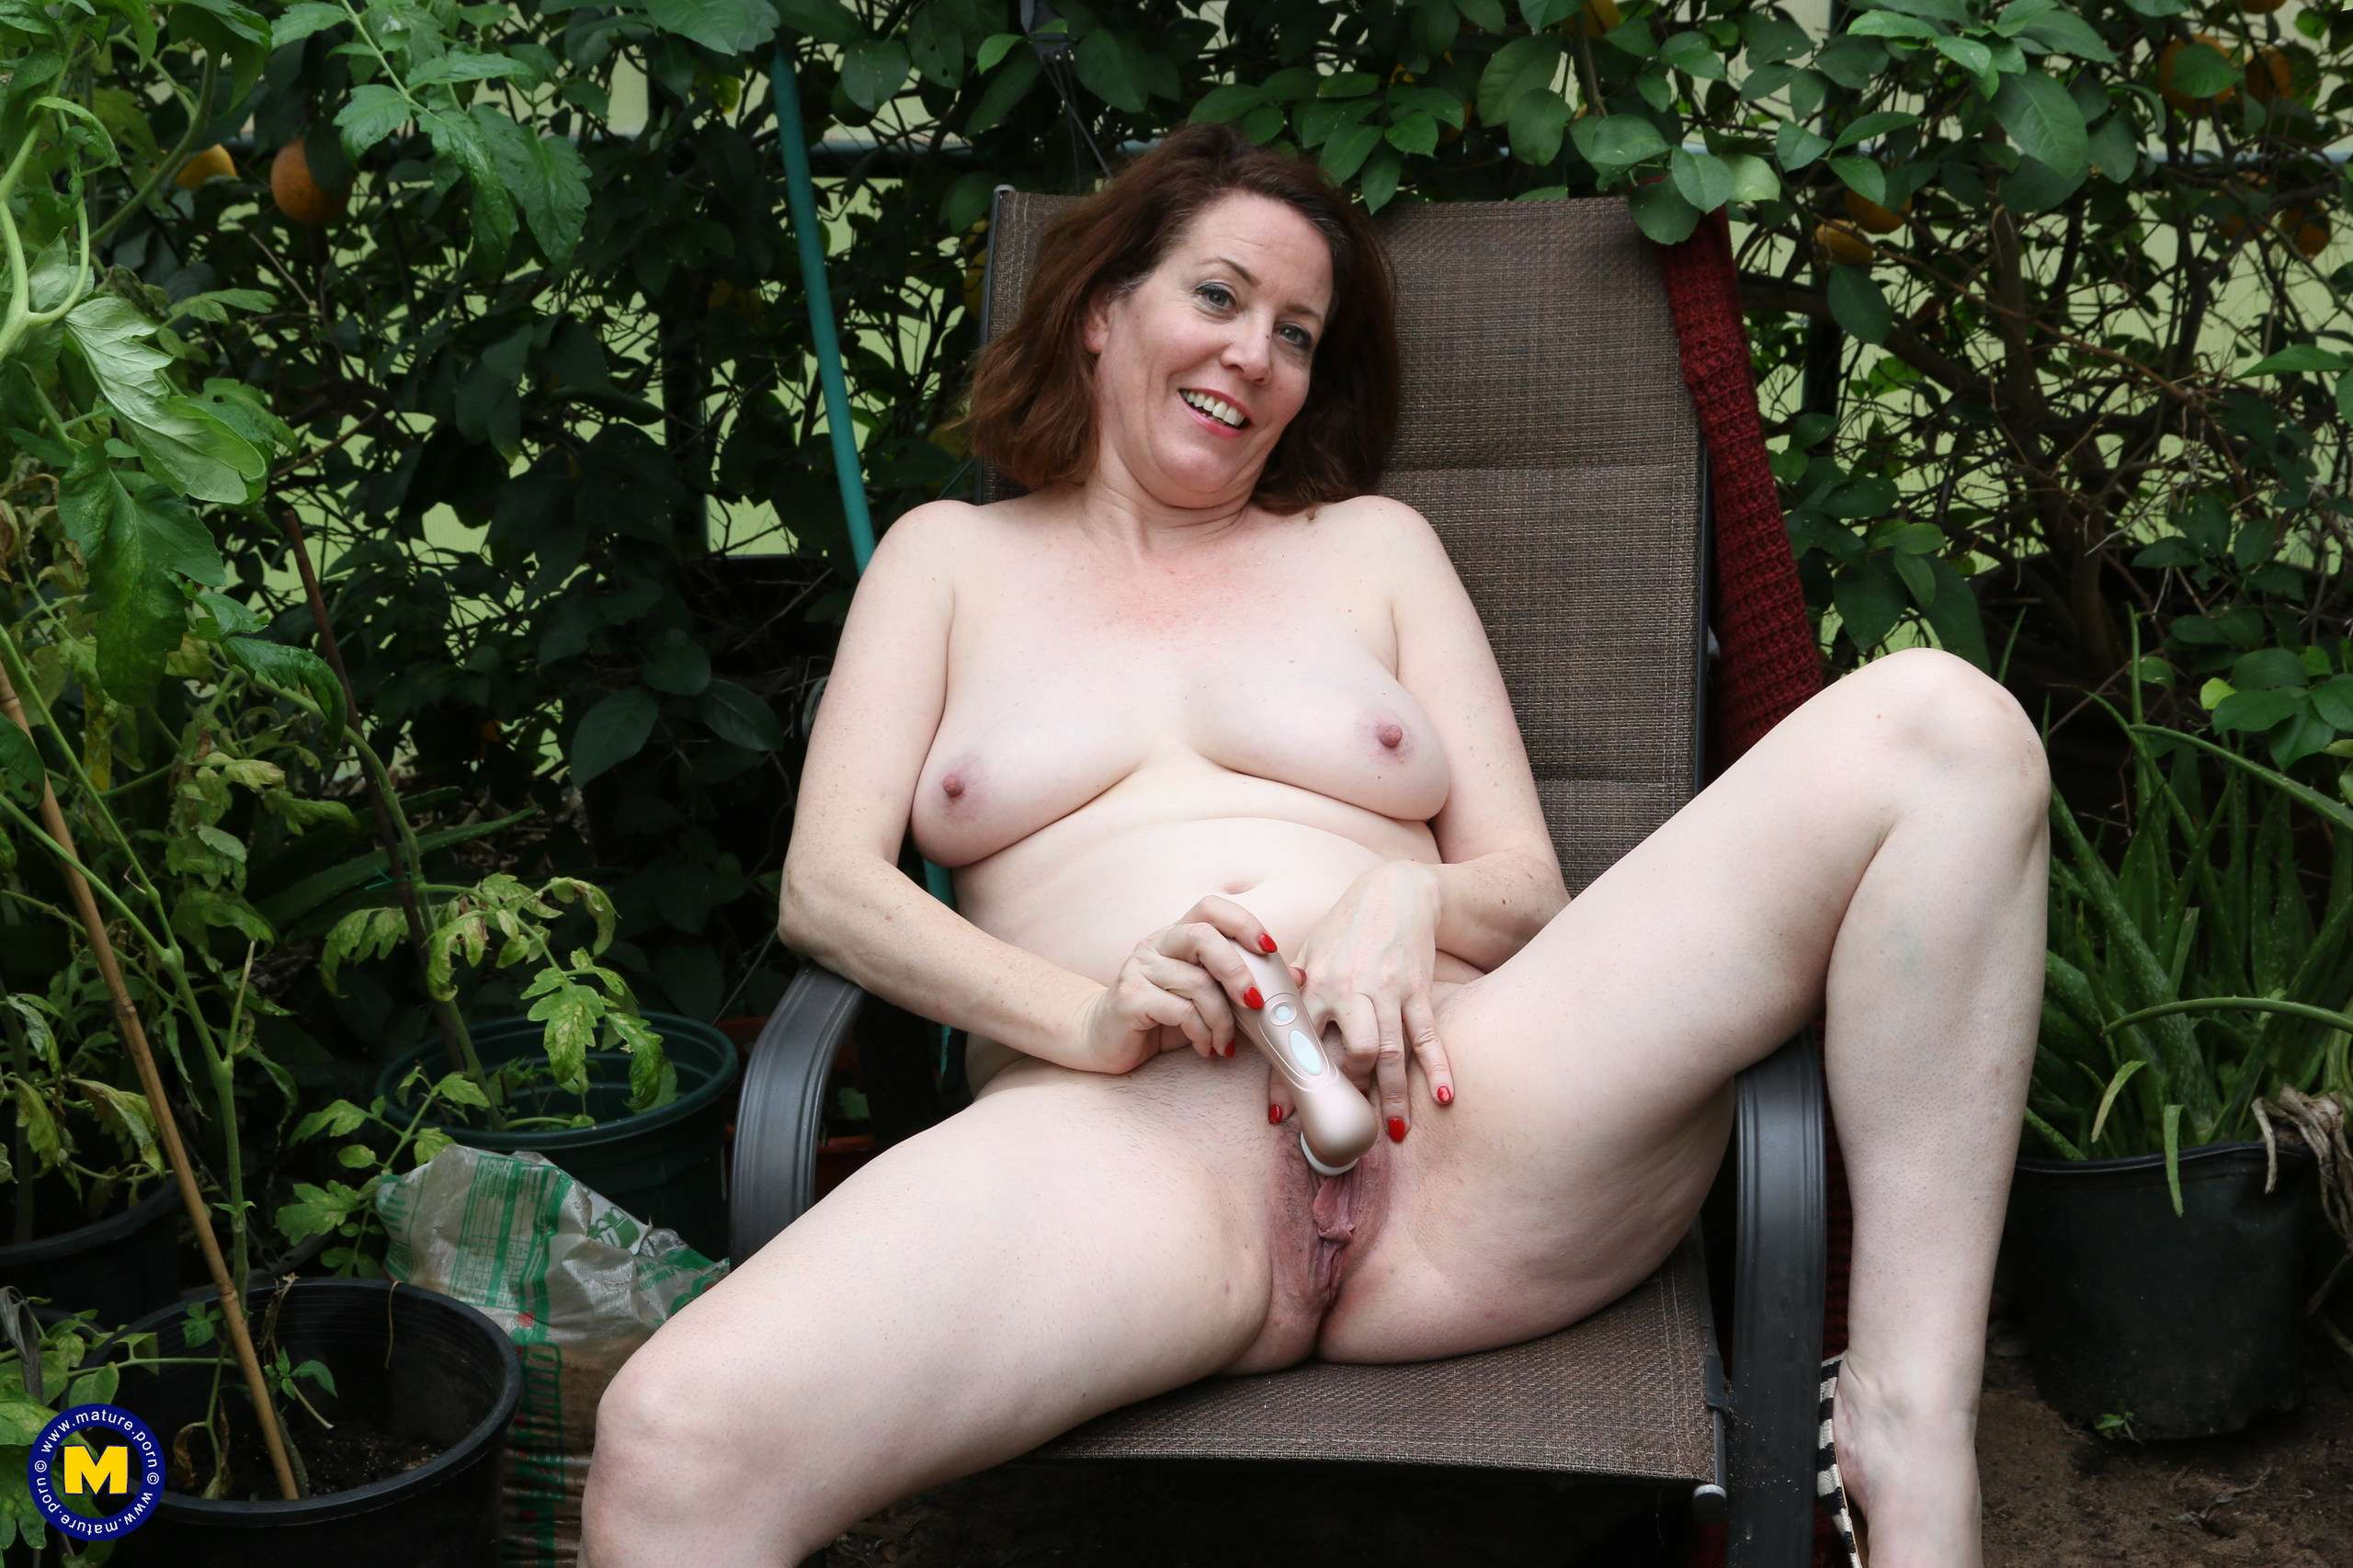 Naughty American MILF fooling around in the garden without panties